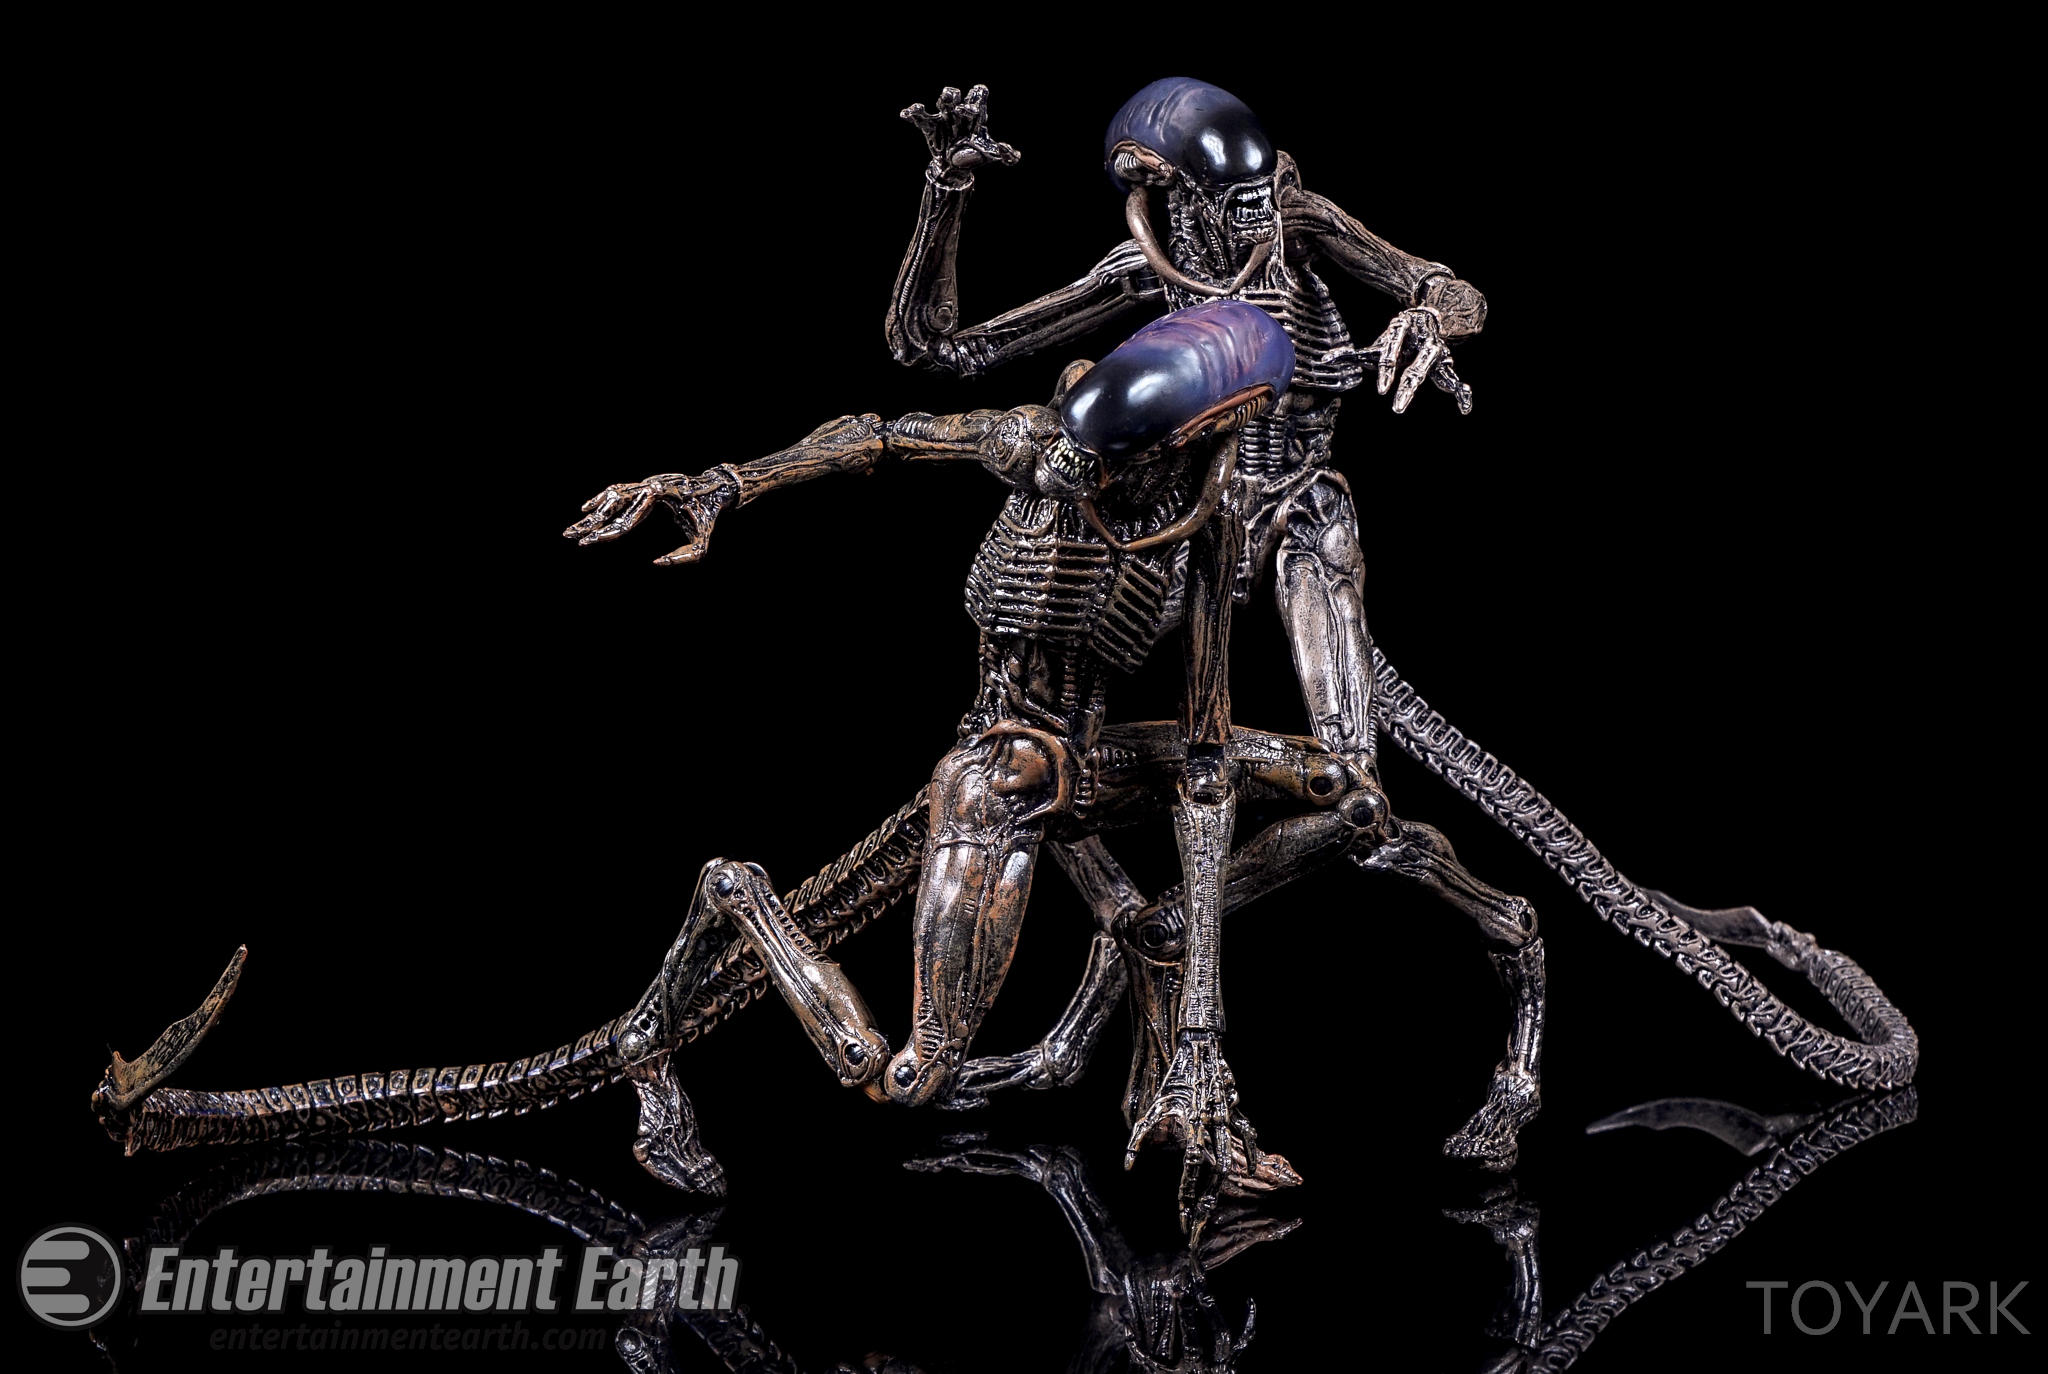 http://news.toyark.com/wp-content/uploads/sites/4/2016/07/Alien-Series-8-NECA-074.jpg